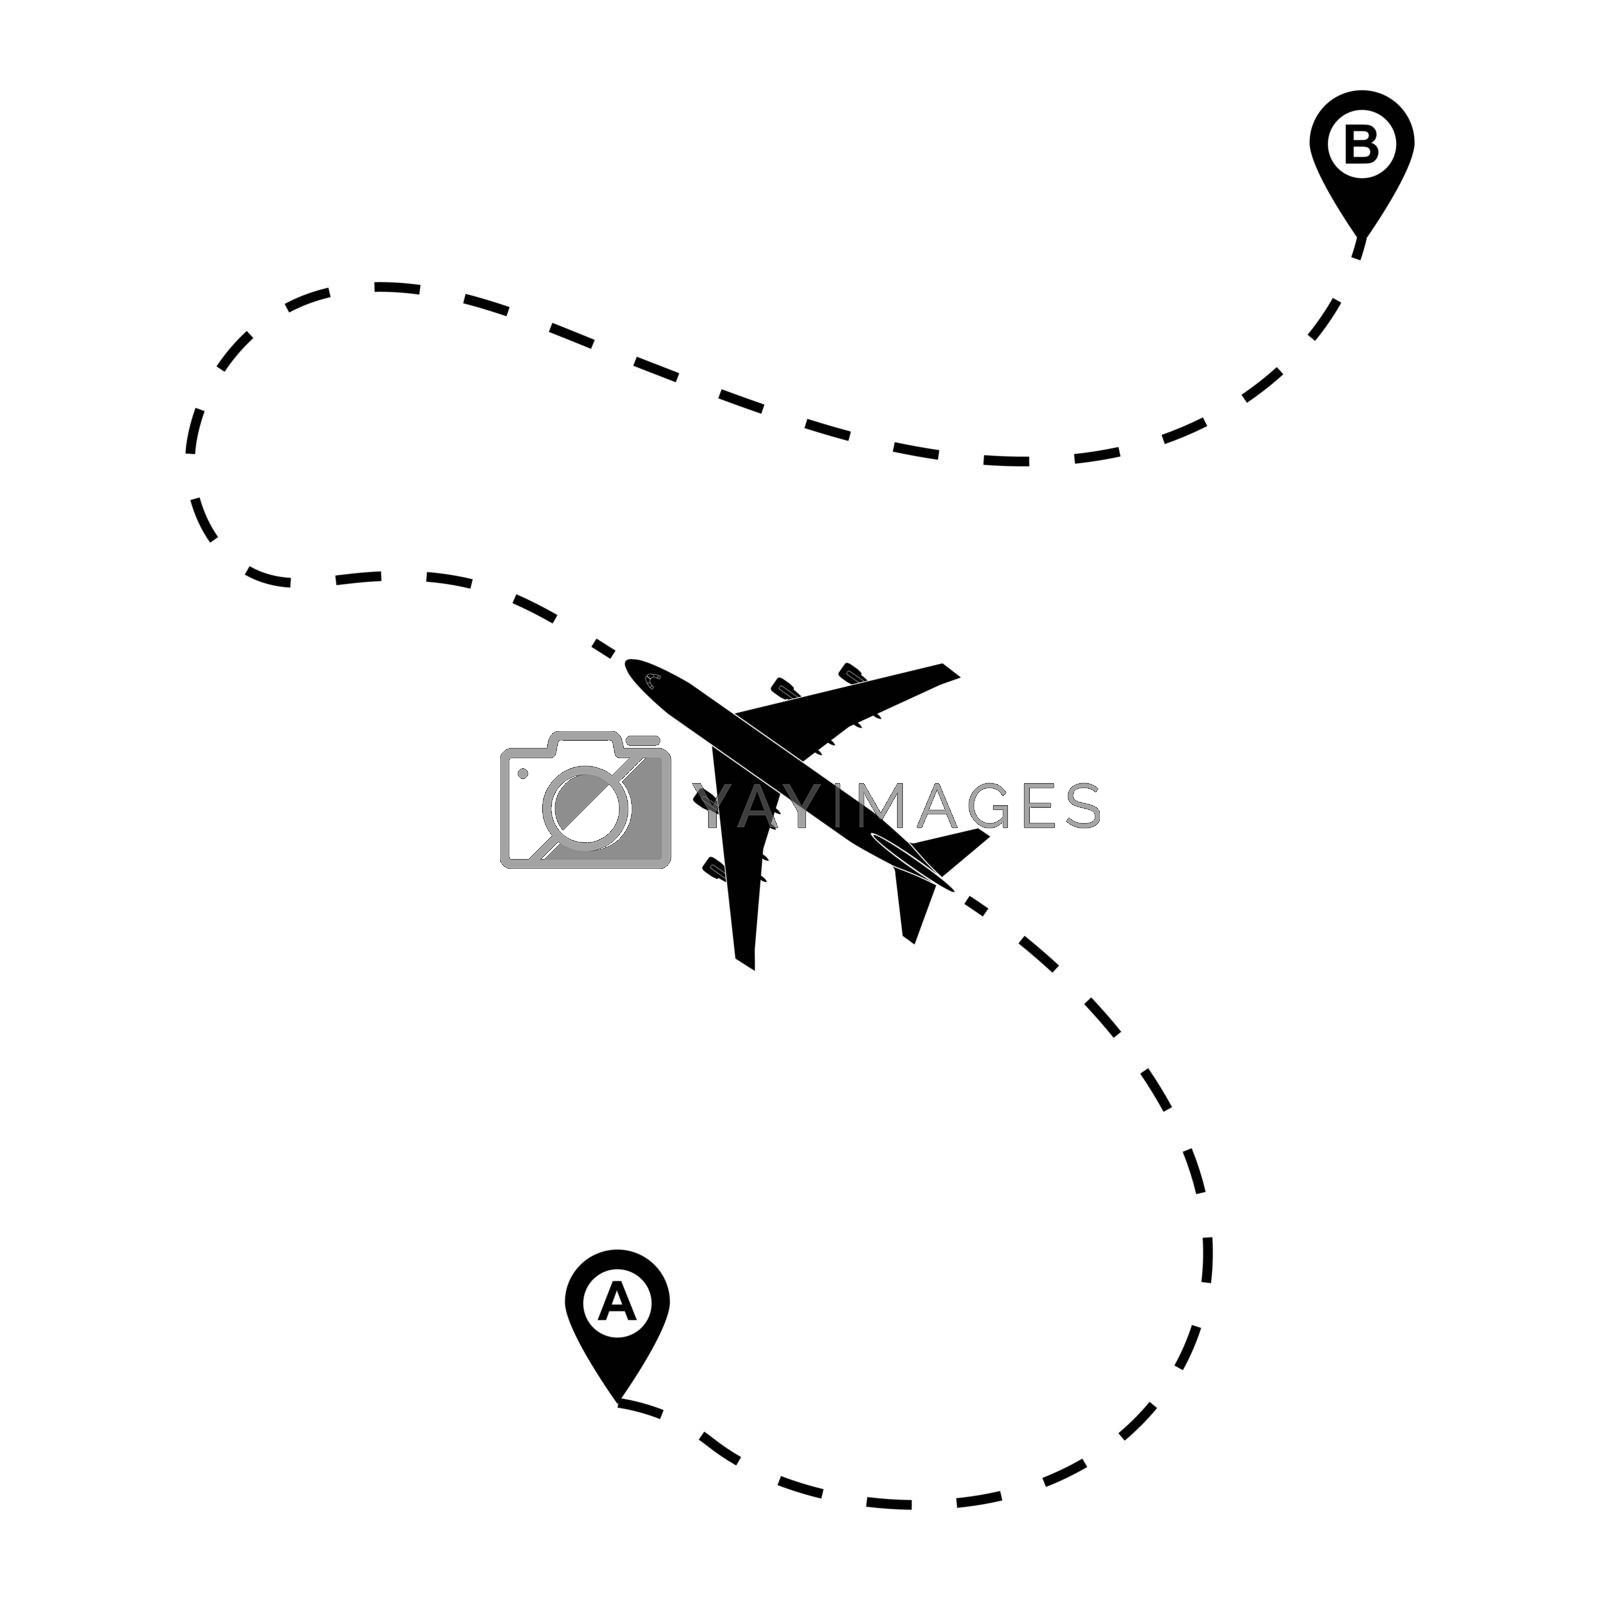 route of the aircraft from point a to point B. the silhouette of the plane and the dotted line of the route a simple design.